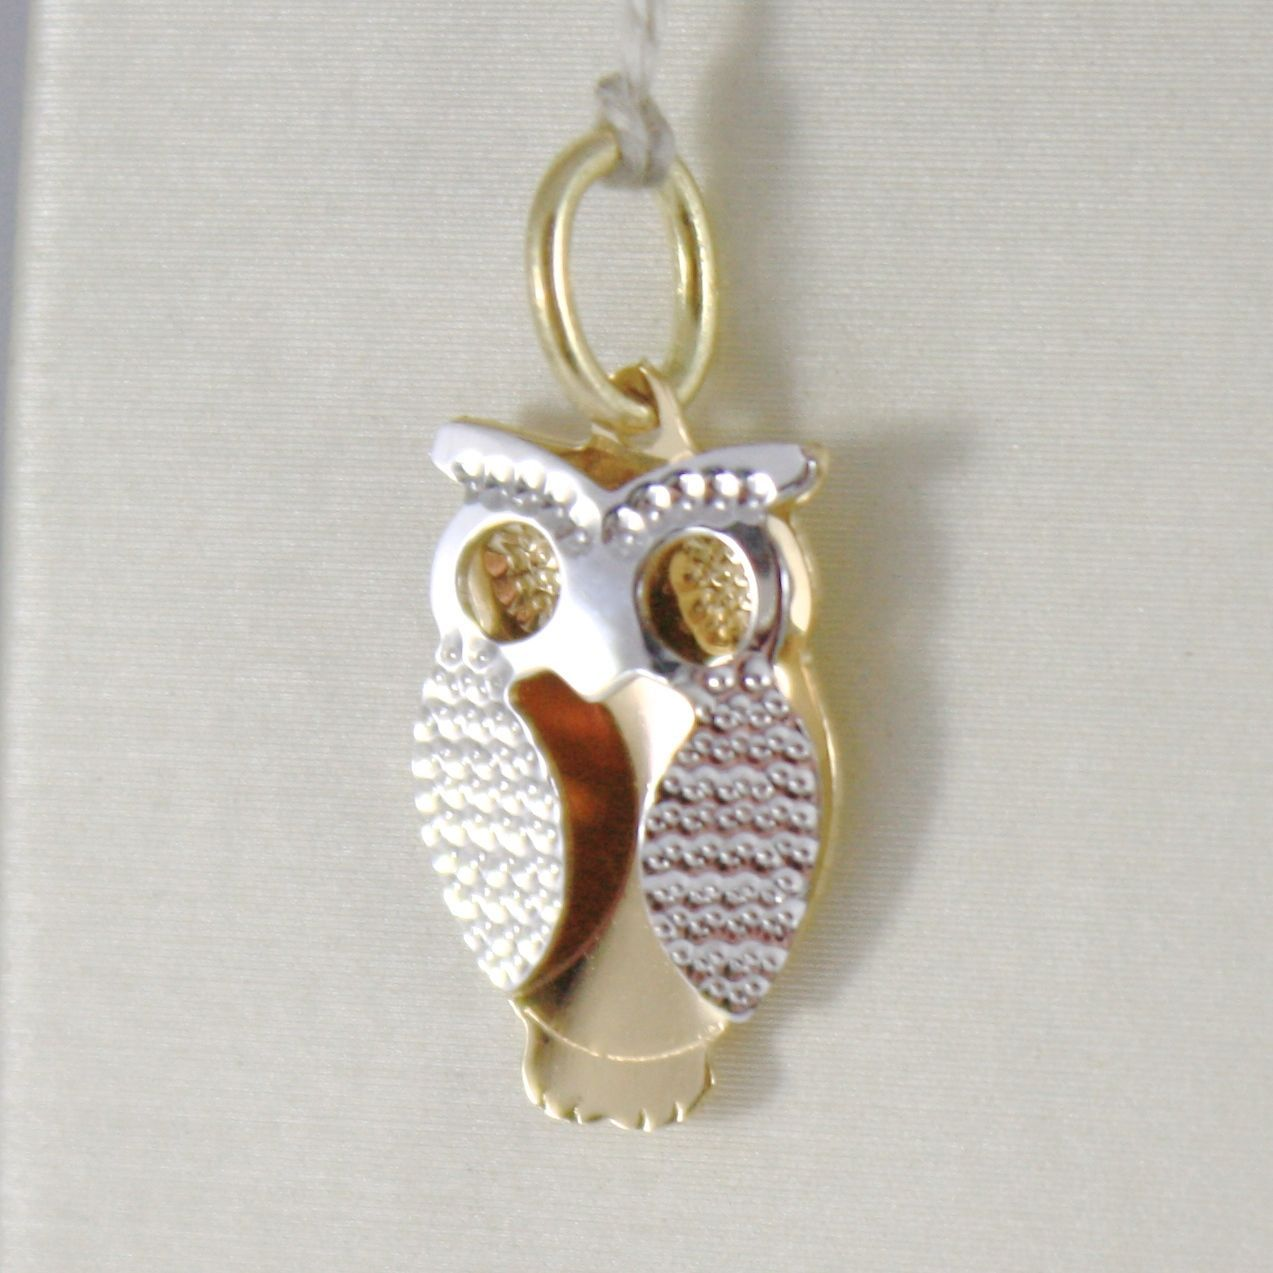 WHITE GOLD PENDANT YELLOW 750 18K, OWL, DOUBLE LAYER 2.2 CM, MADE IN ITALY